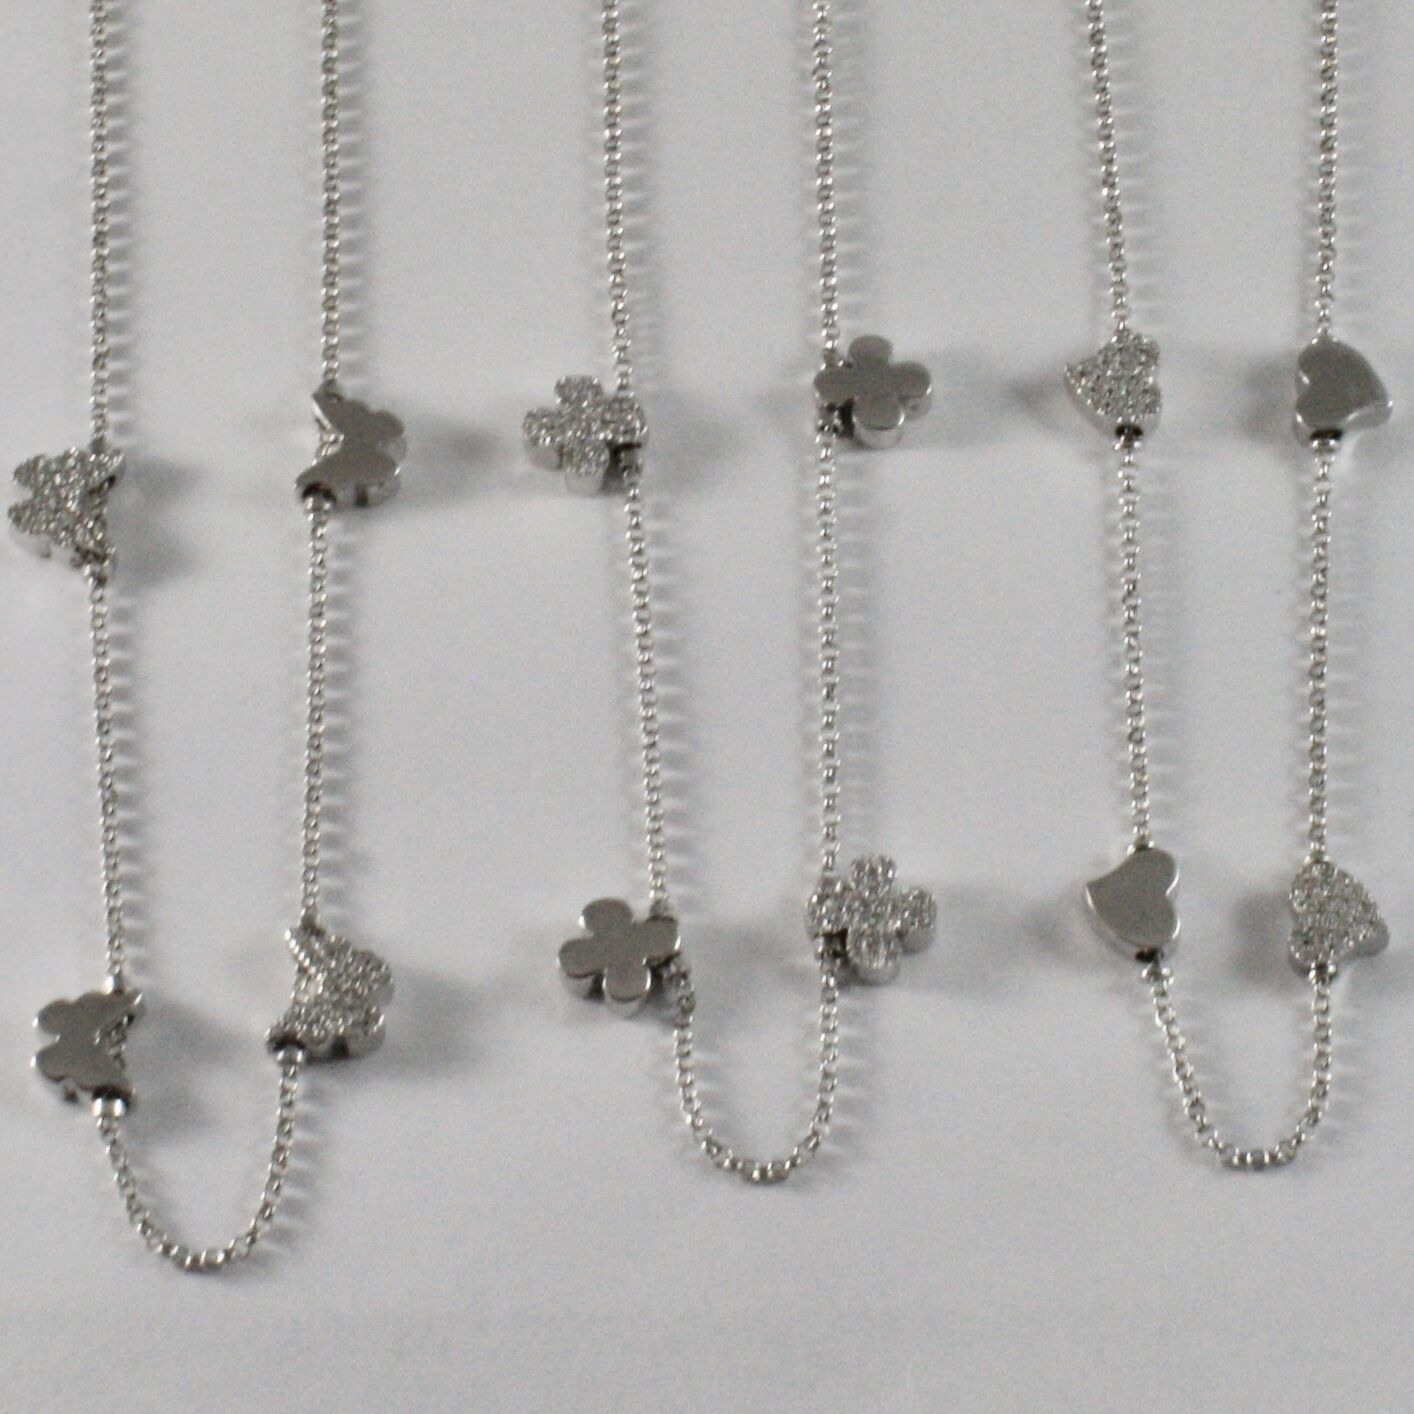 NECKLACE 925 SILVER JACK&CO WITH FOUR-LEAF CLOVER HEART 0,5 BUTTERFLY